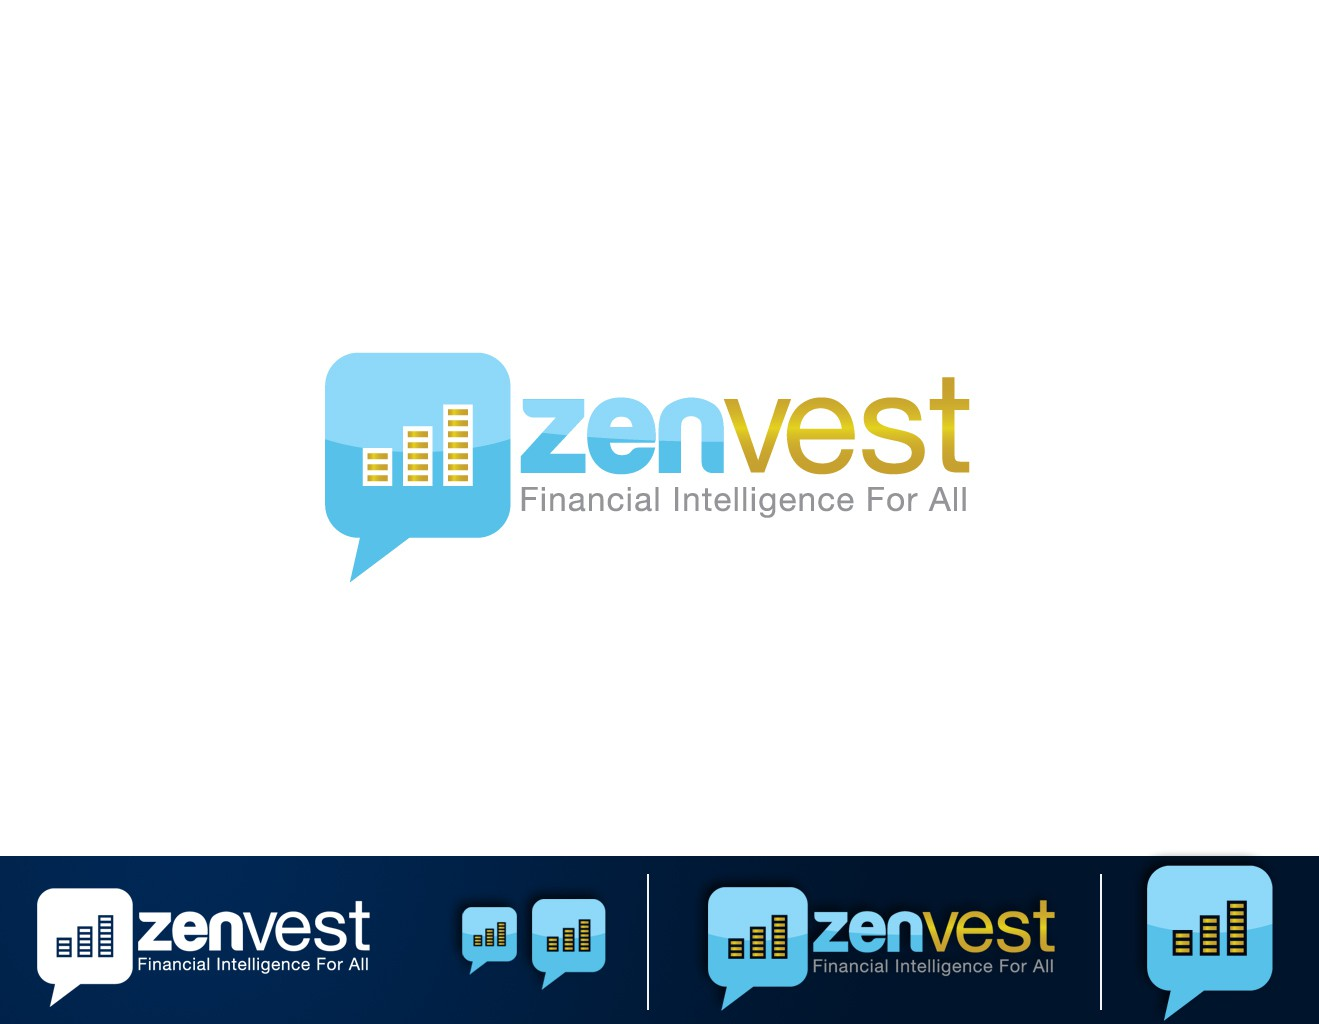 Logo required to create brand image/awareness for a social network for traders and investors